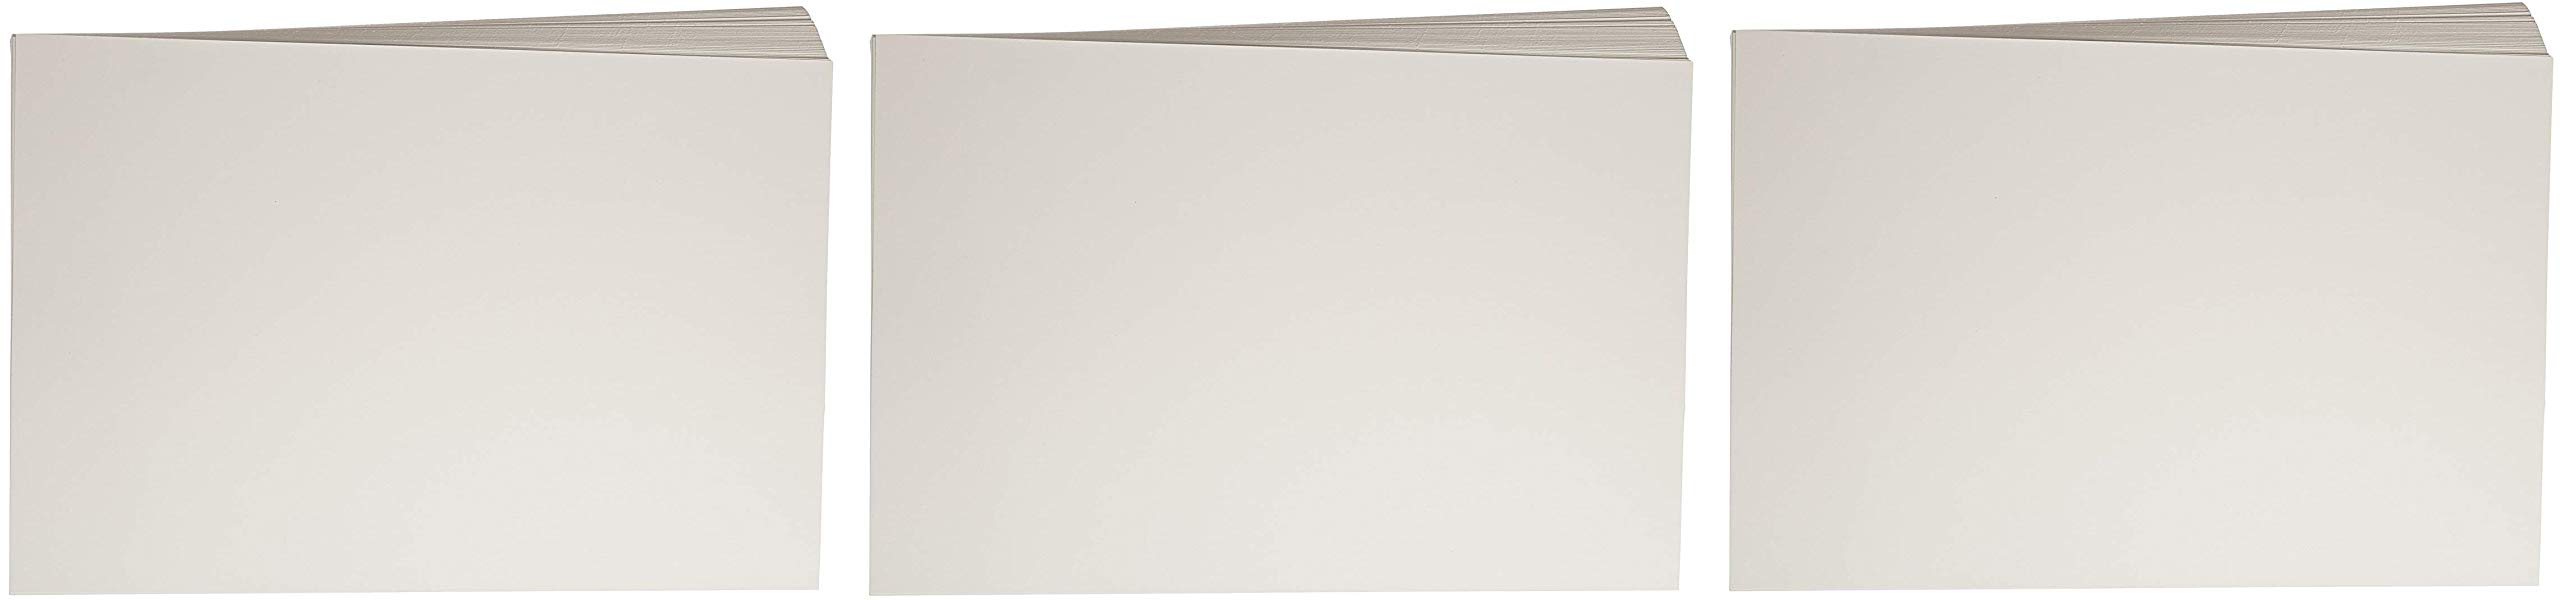 Sax Watercolor Beginner Paper, 90 lbs, 12 x 18 Inches, Natural White, Pack of 100 (3 X Pack of 100)